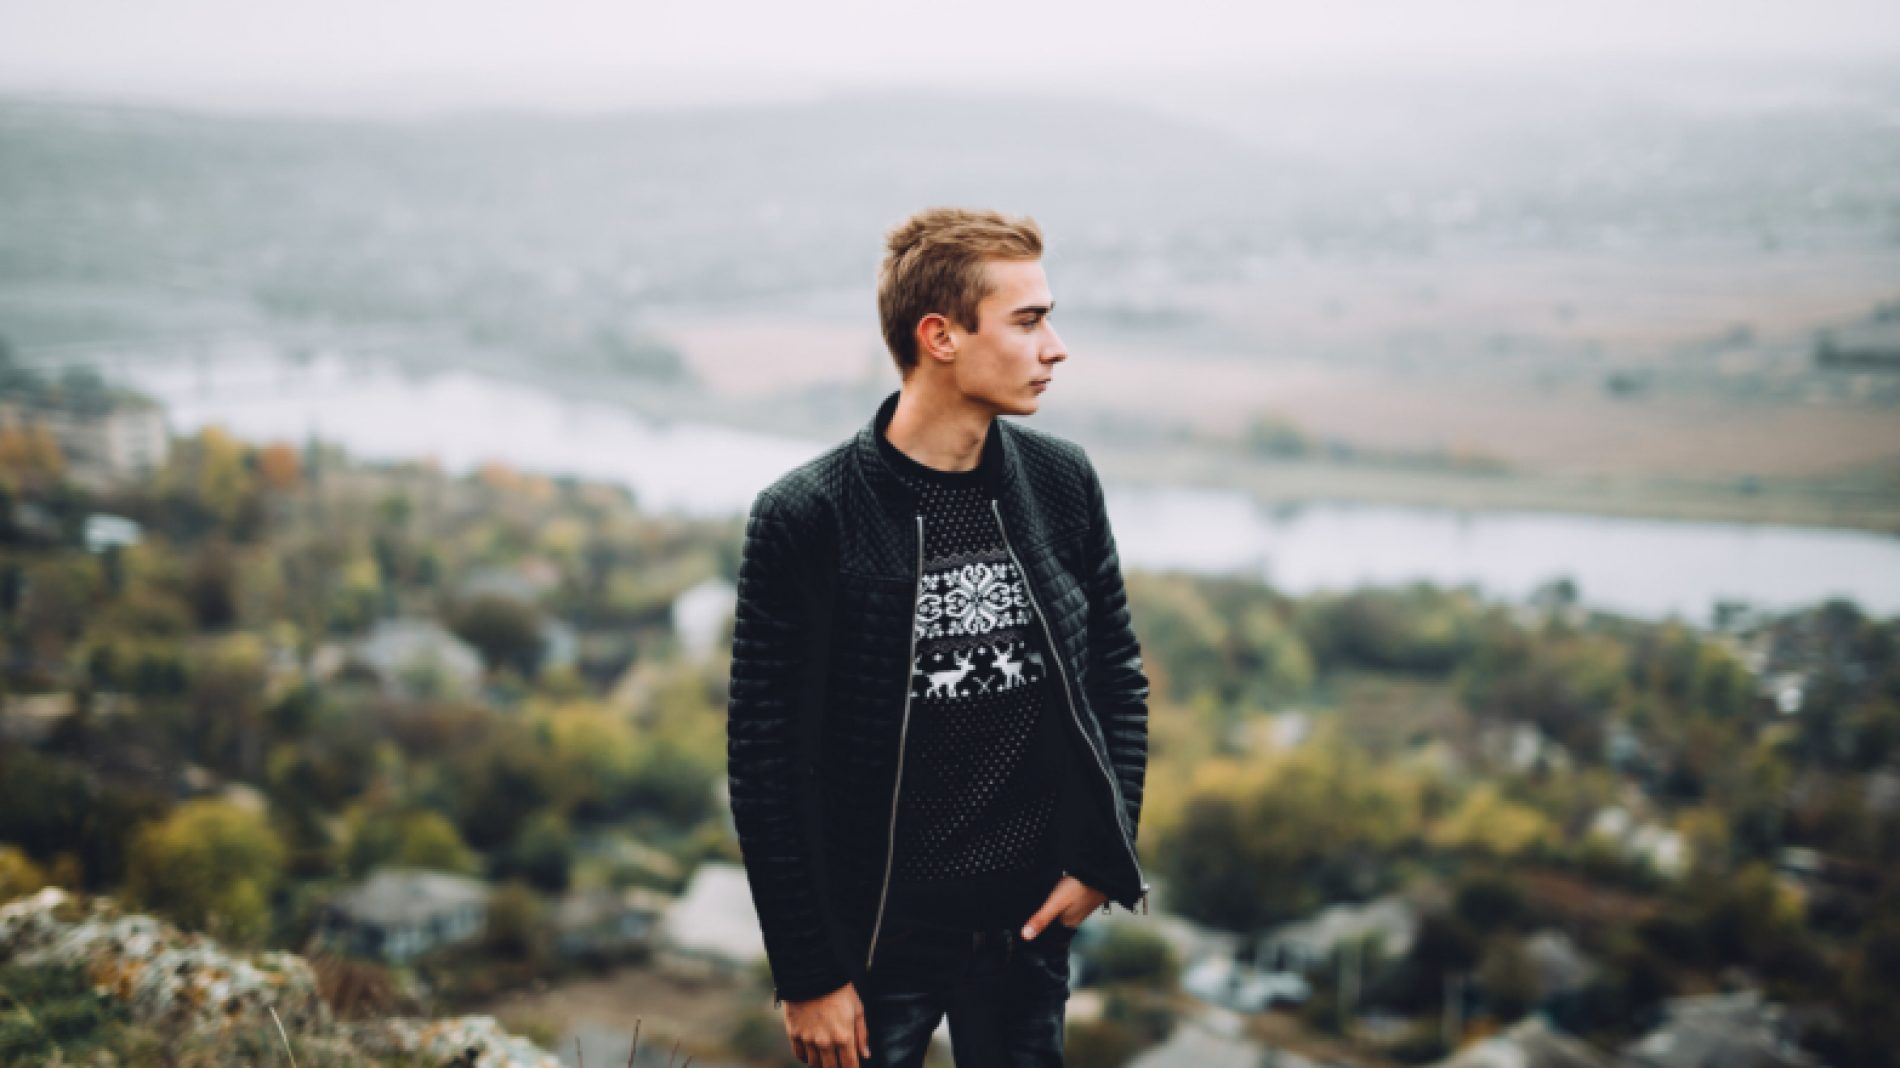 Young-man-on-a-hill-looking-at-the-view-CjFlfZ